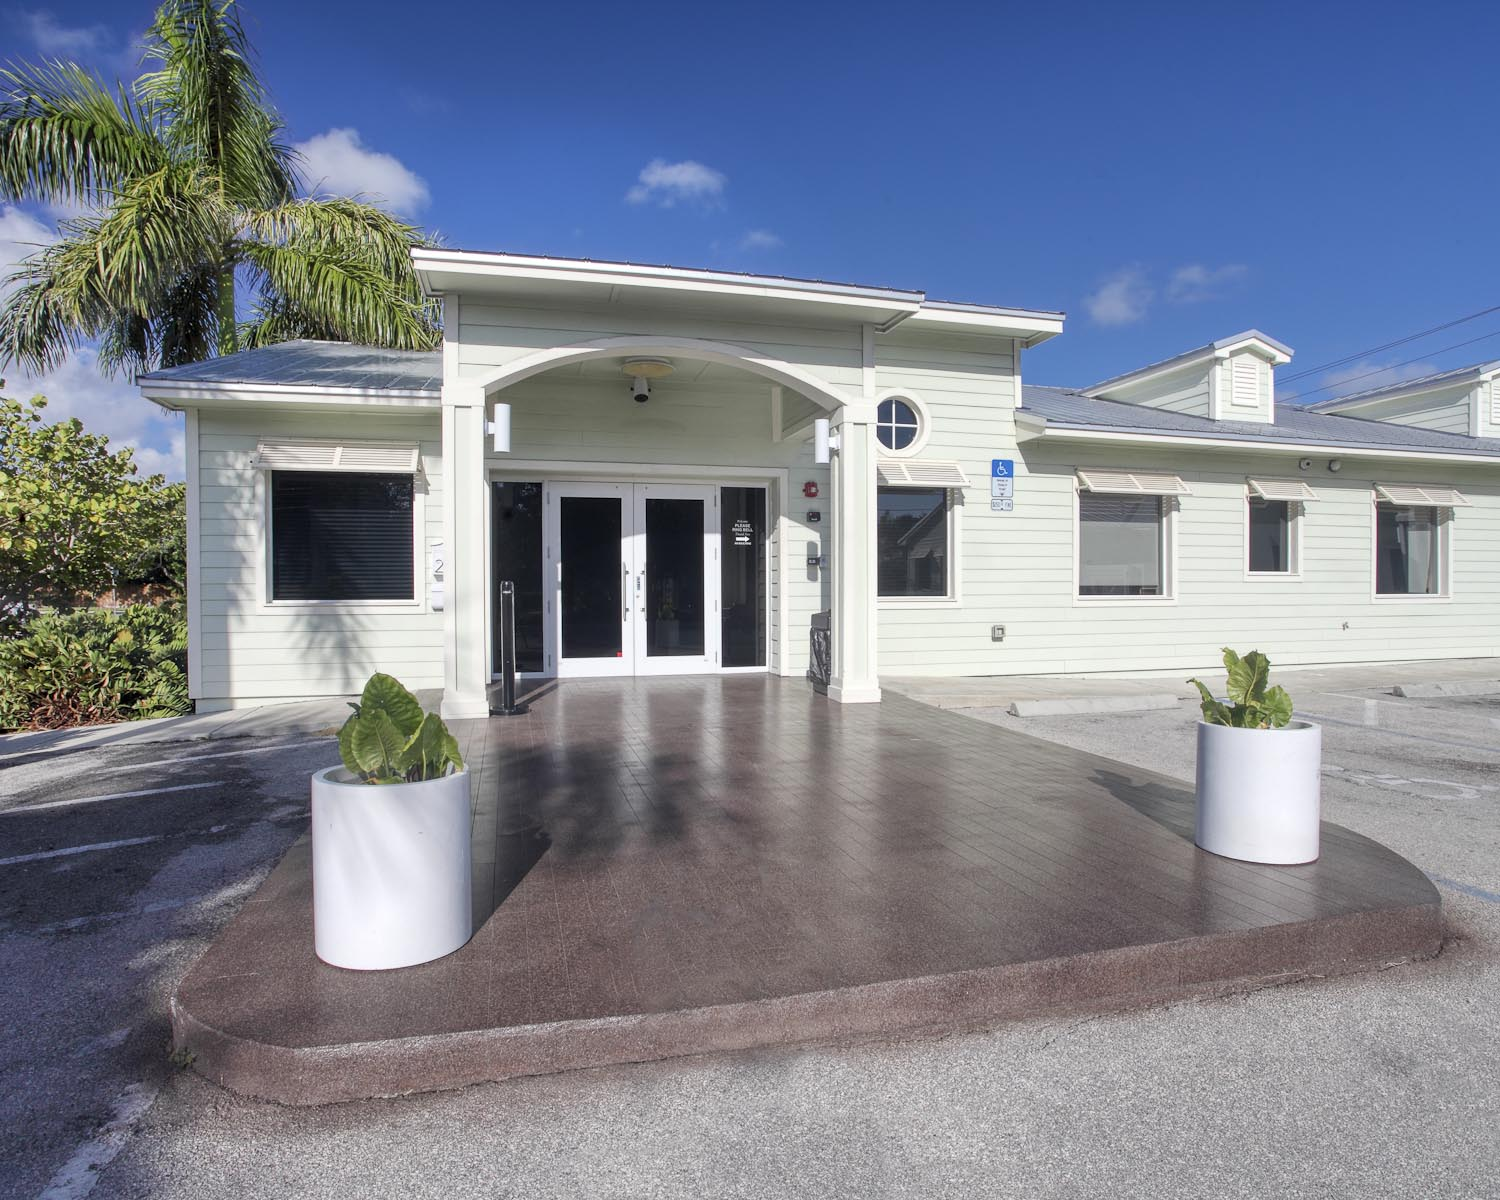 Fort Lauderdale detox center image 5 twenty four hour admissions every day even holidays